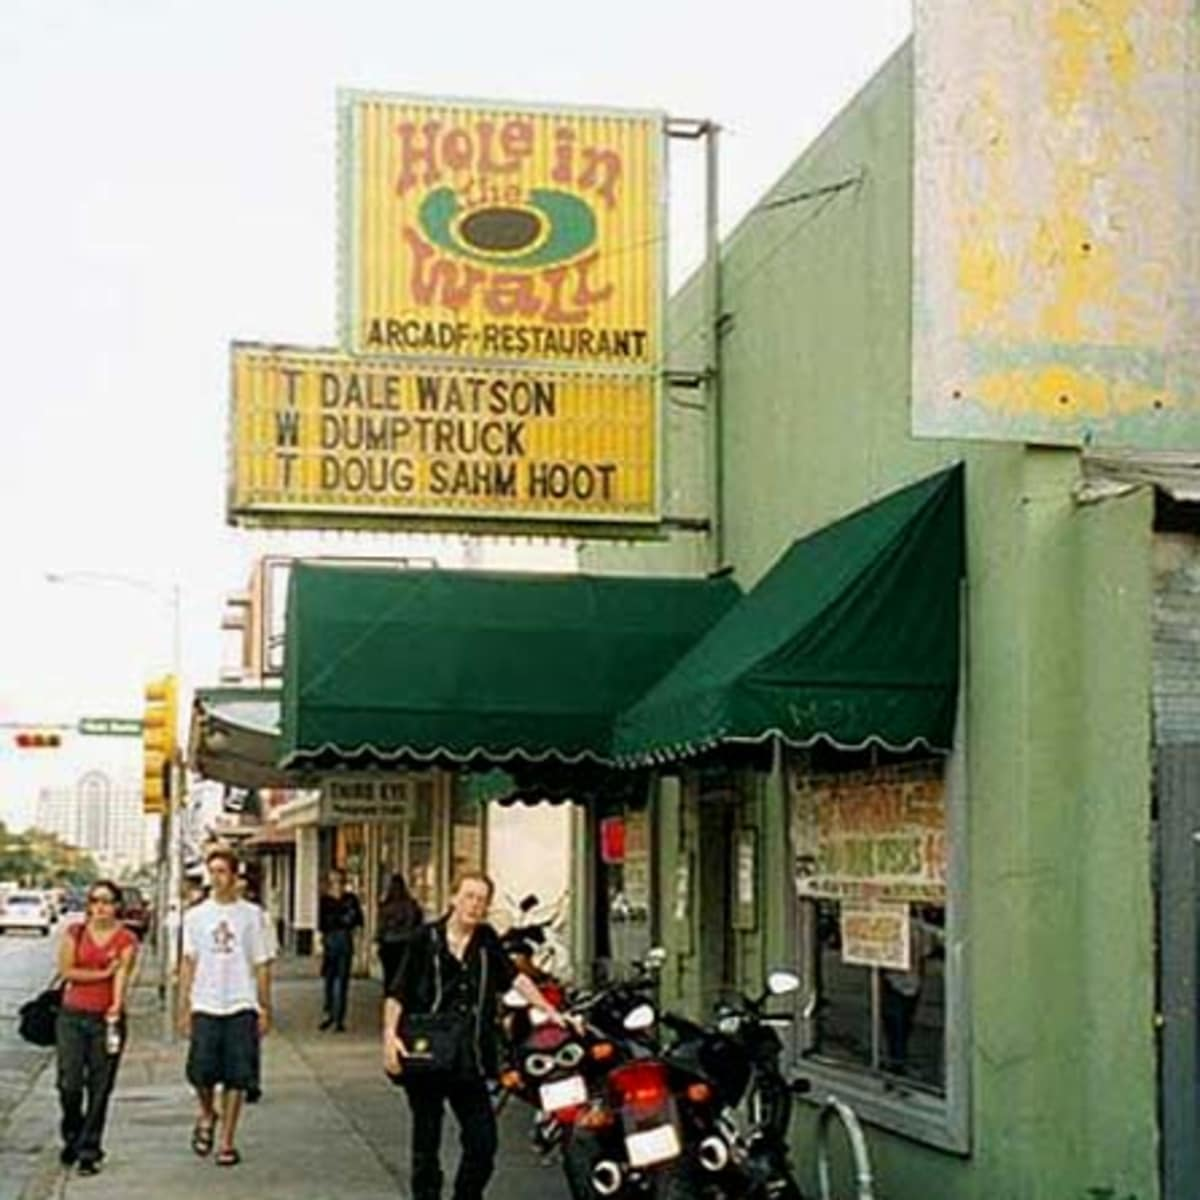 Austin Photo: Places_Live Music_Hole in the Wall_Exterior